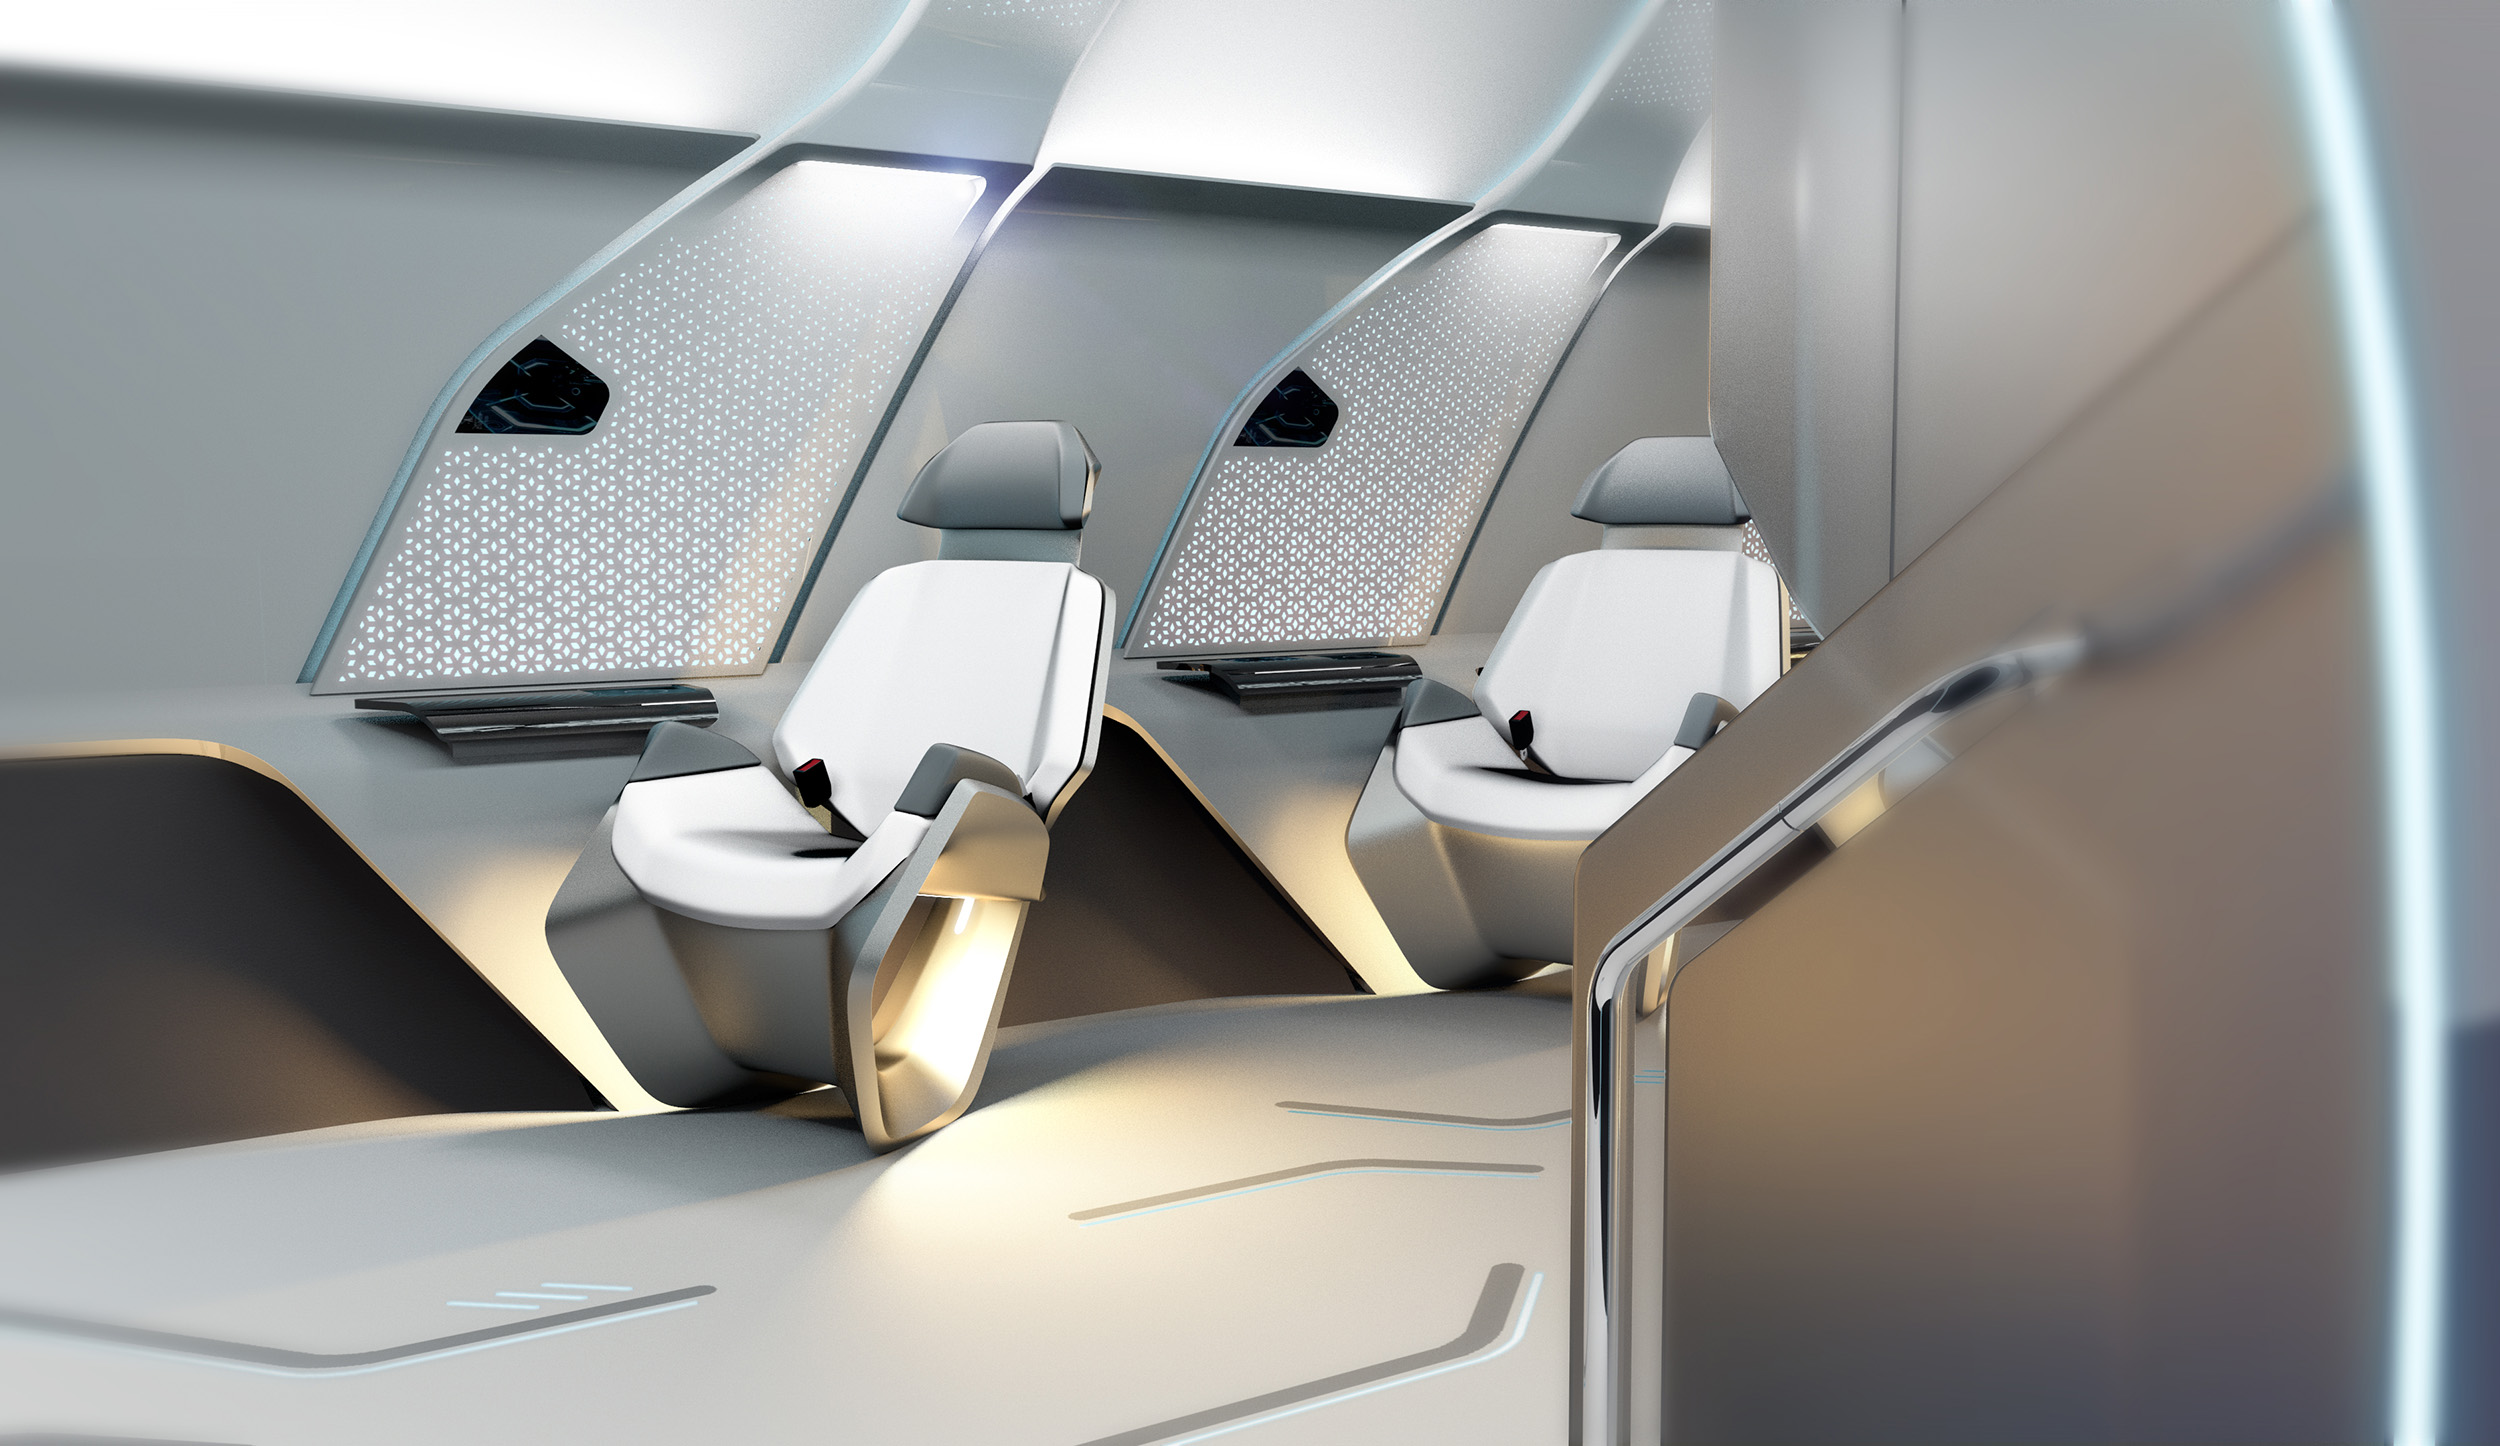 hyperloop seats from the entrance of the capsule